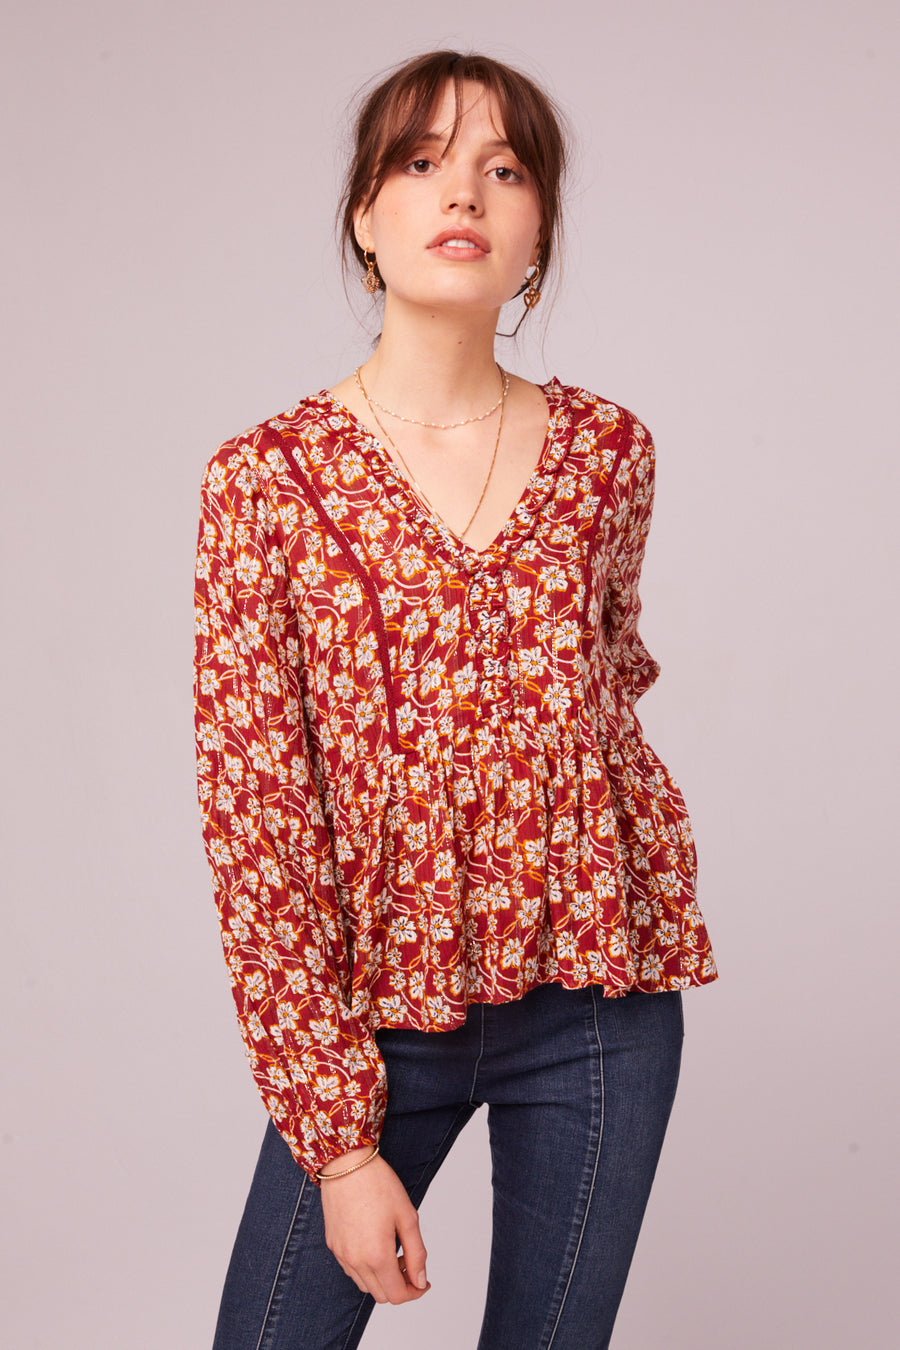 Vineyard Ave Long Sleeve Floral Blouse Lifestyle